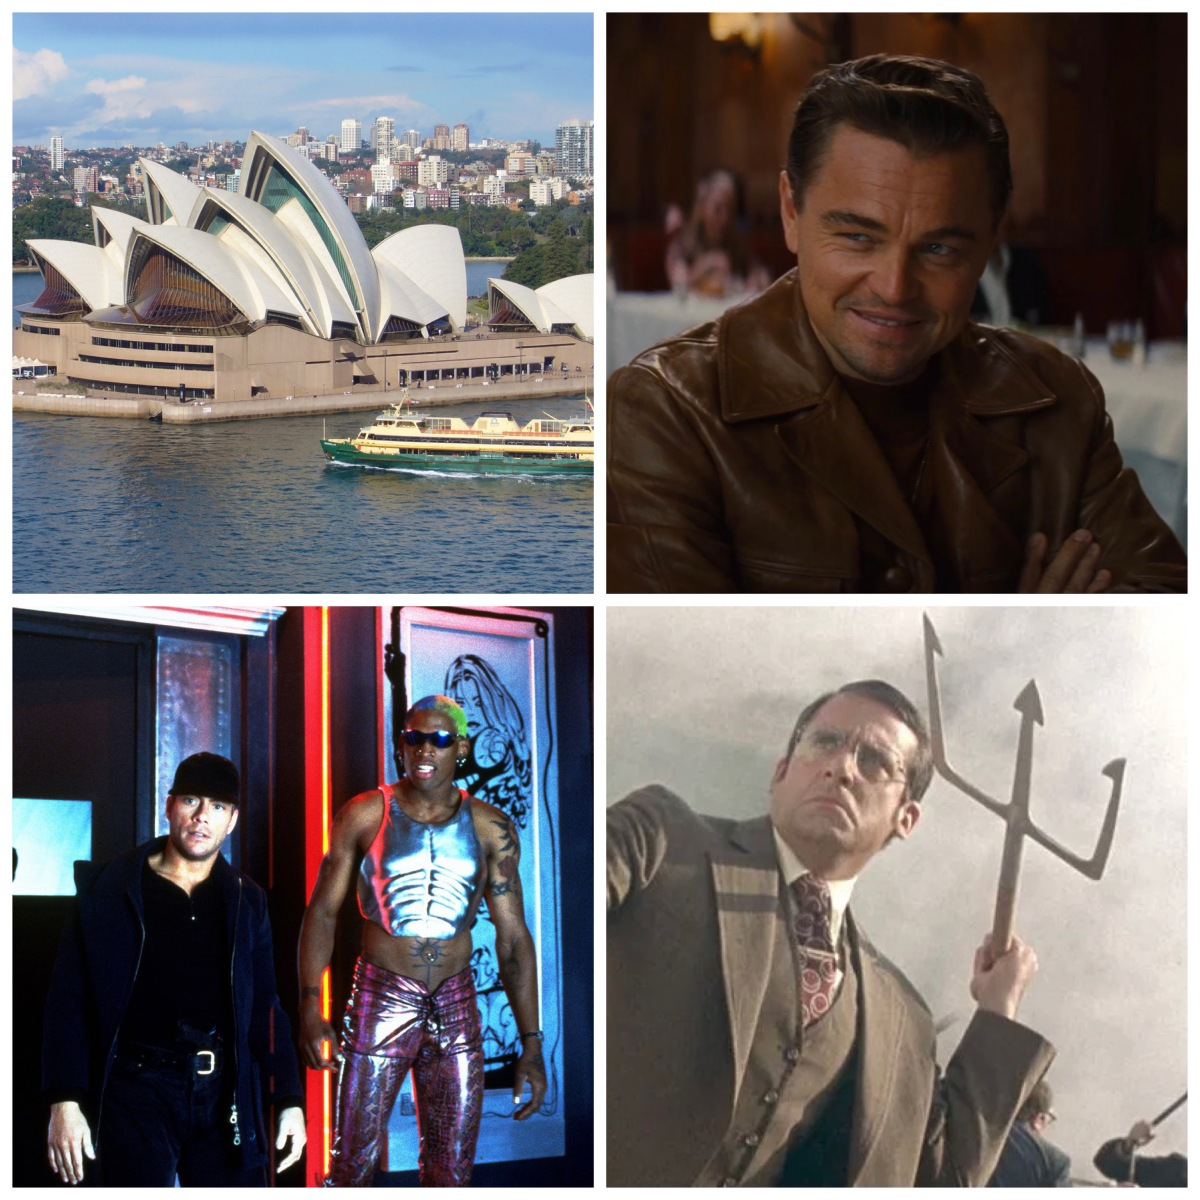 The Sydney Opera House, Leonardo DiCaprio in Once Upon A Time In Hollywood, JCVD and Dennis Rodman in Double Team, and Steve Carell in Anchorman.